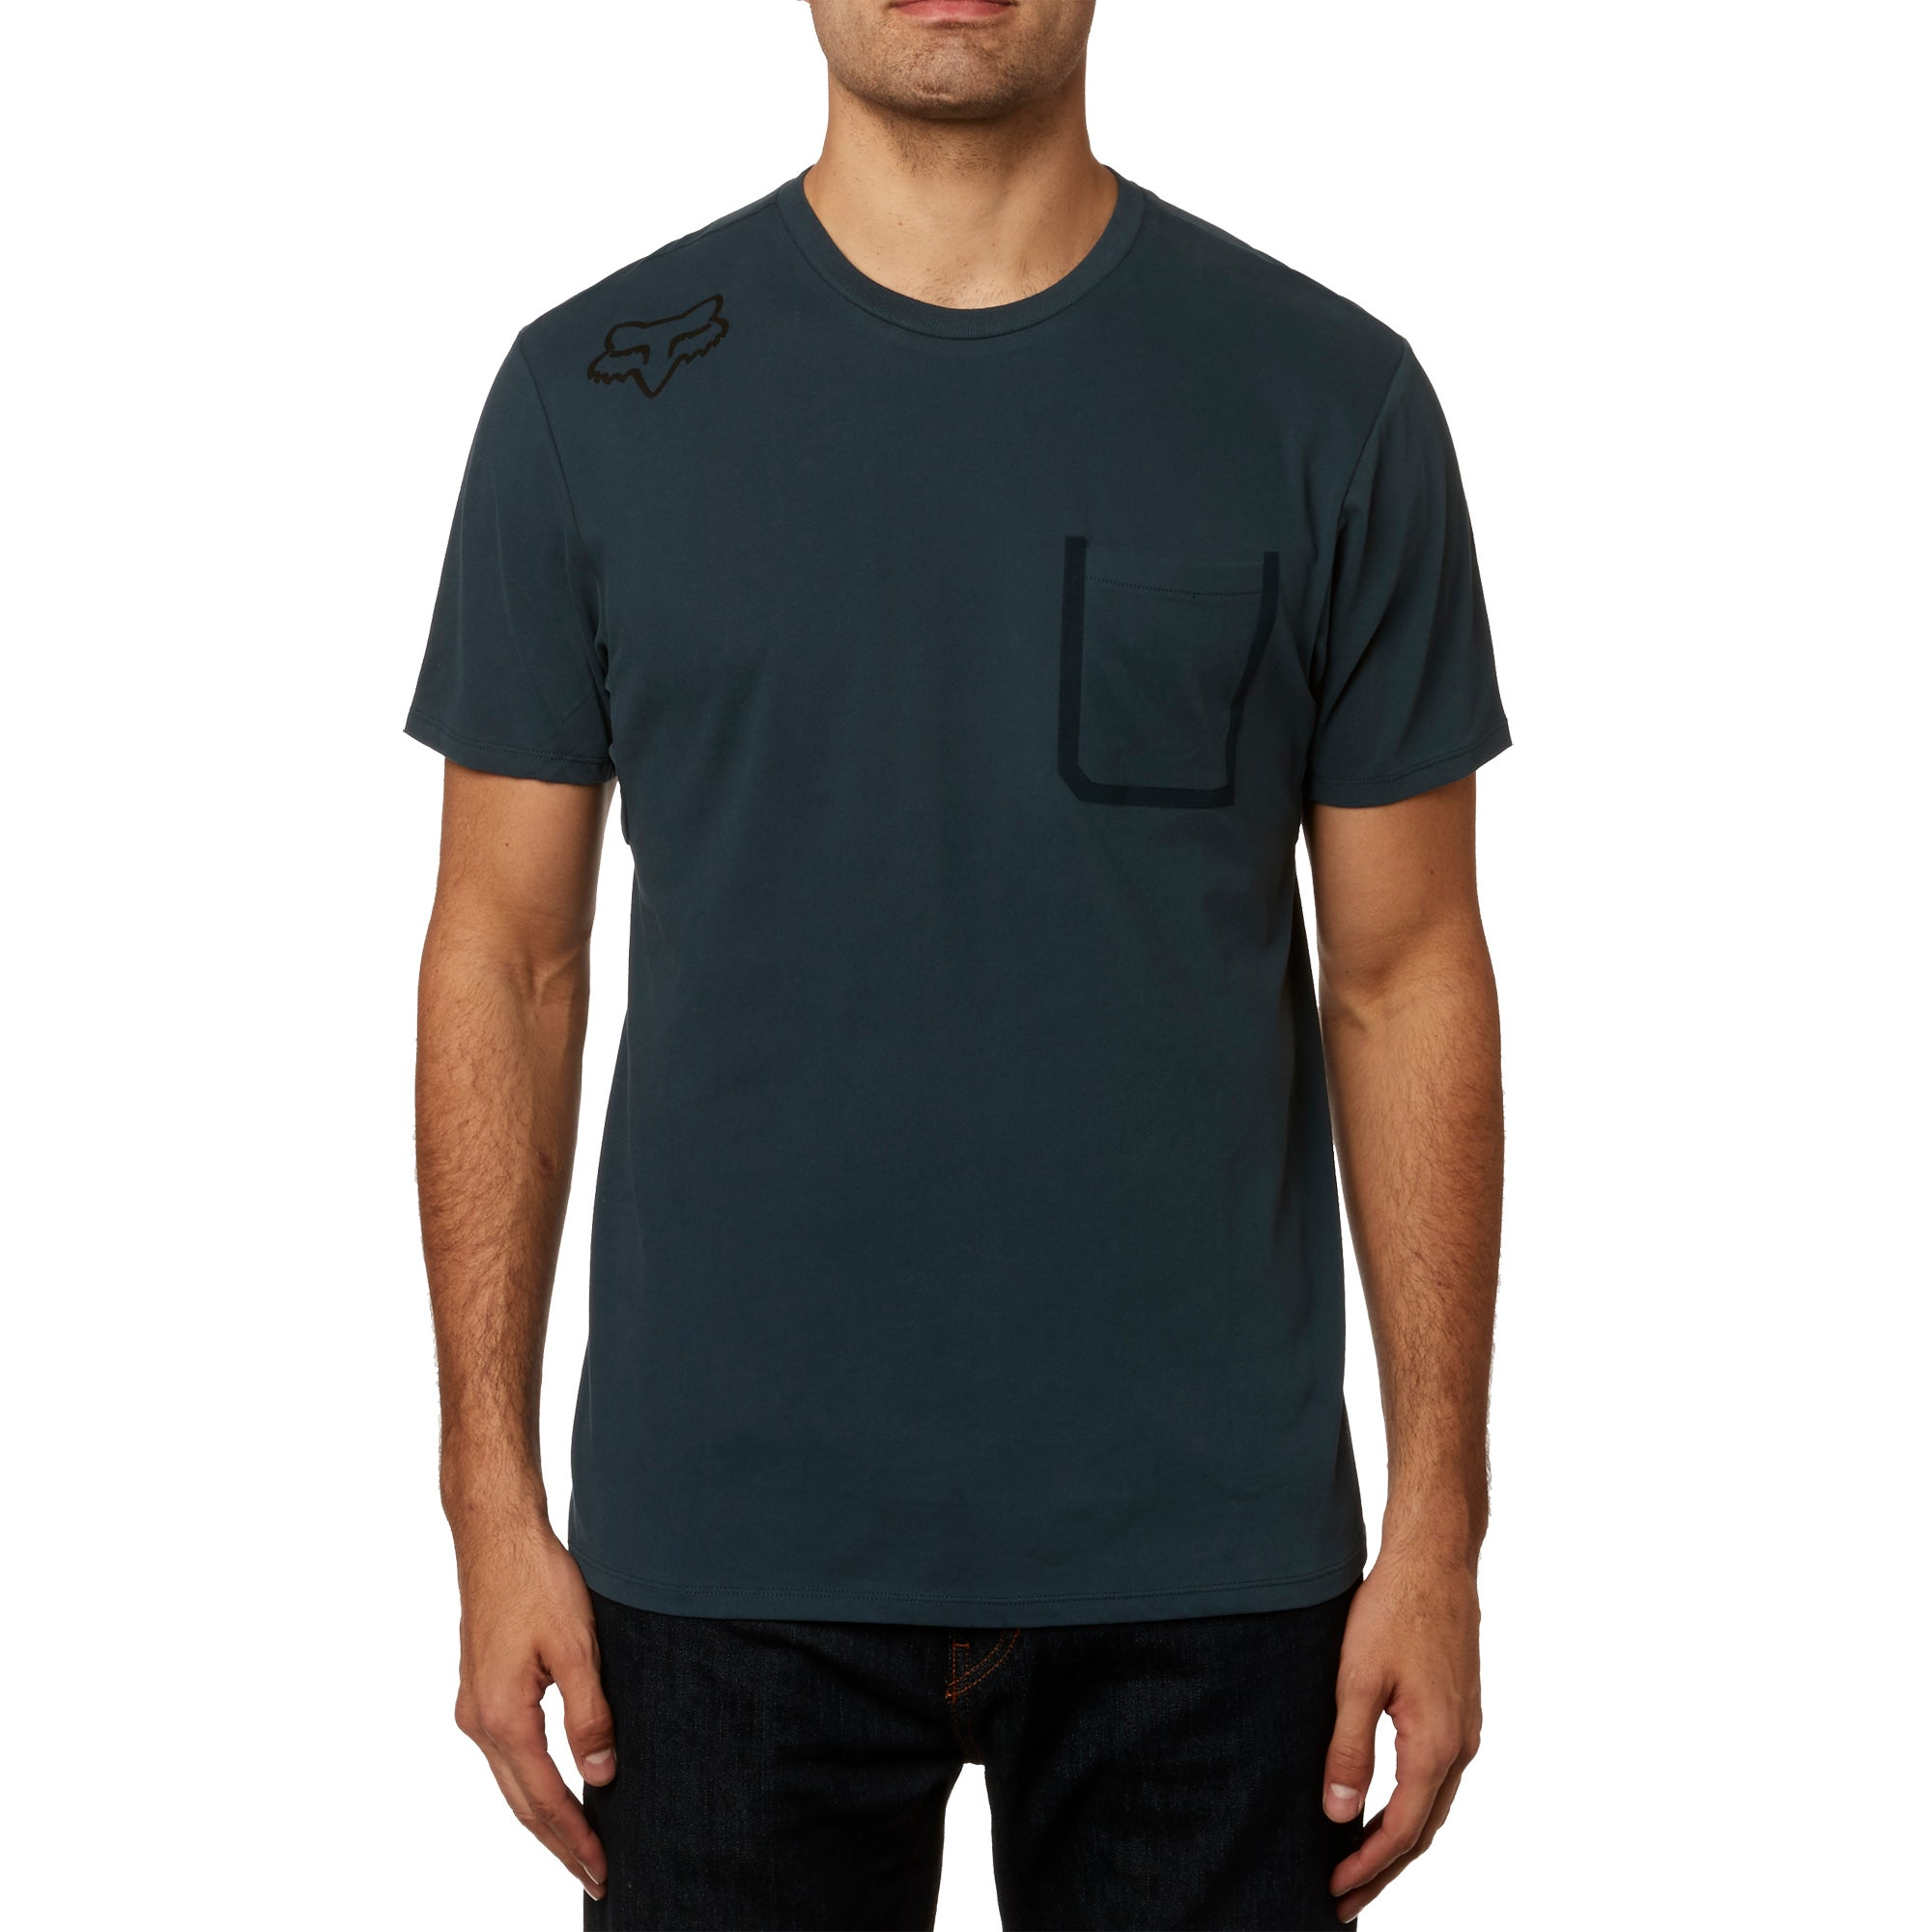 9c41e8df161d Fox Racing Redplate 360 Airline Mens T-shirt - Navy All Sizes